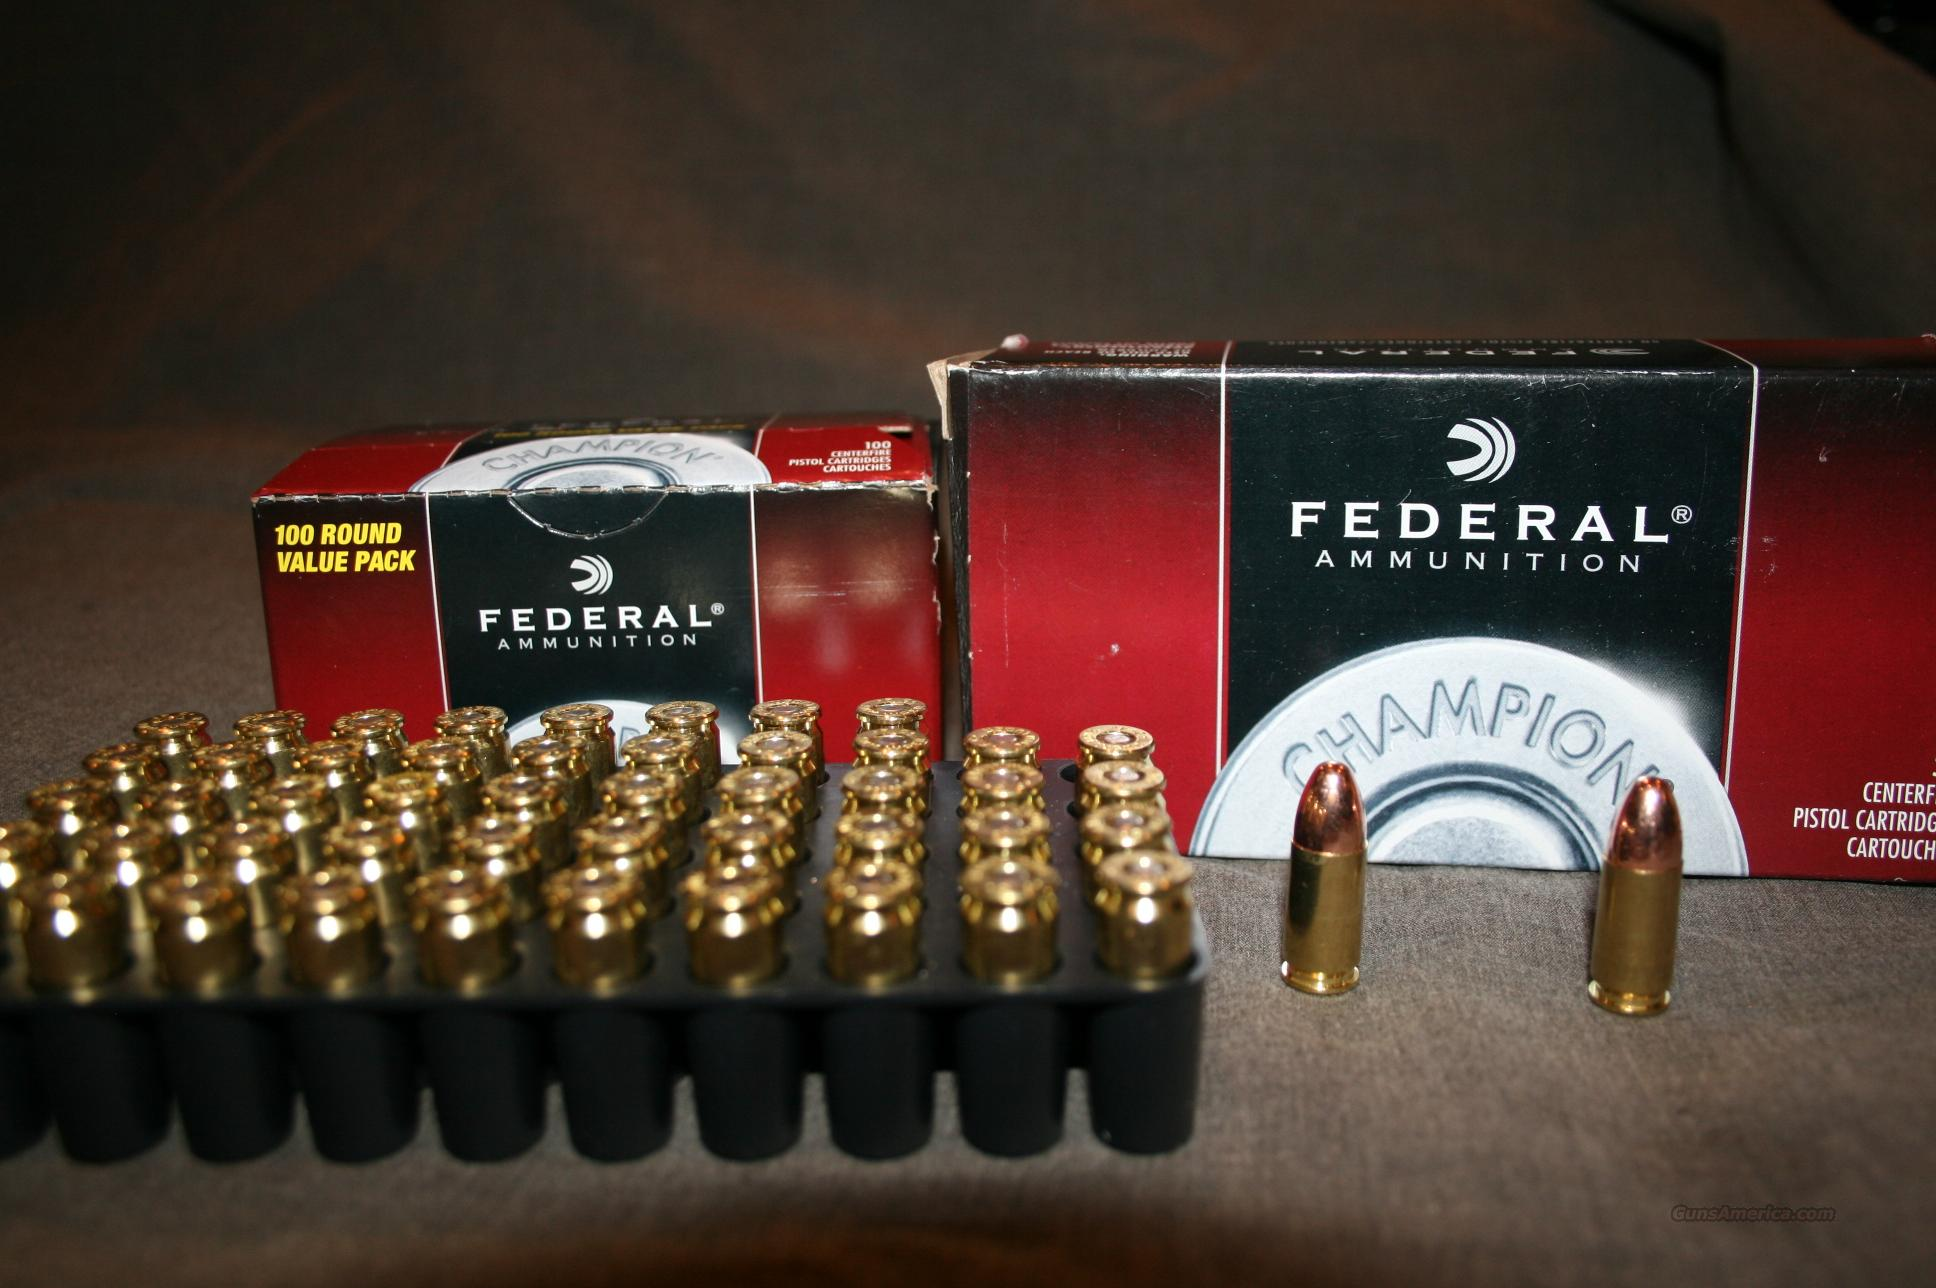 9mm ammo, 50 Rounds Federal  Non-Guns > Ammunition